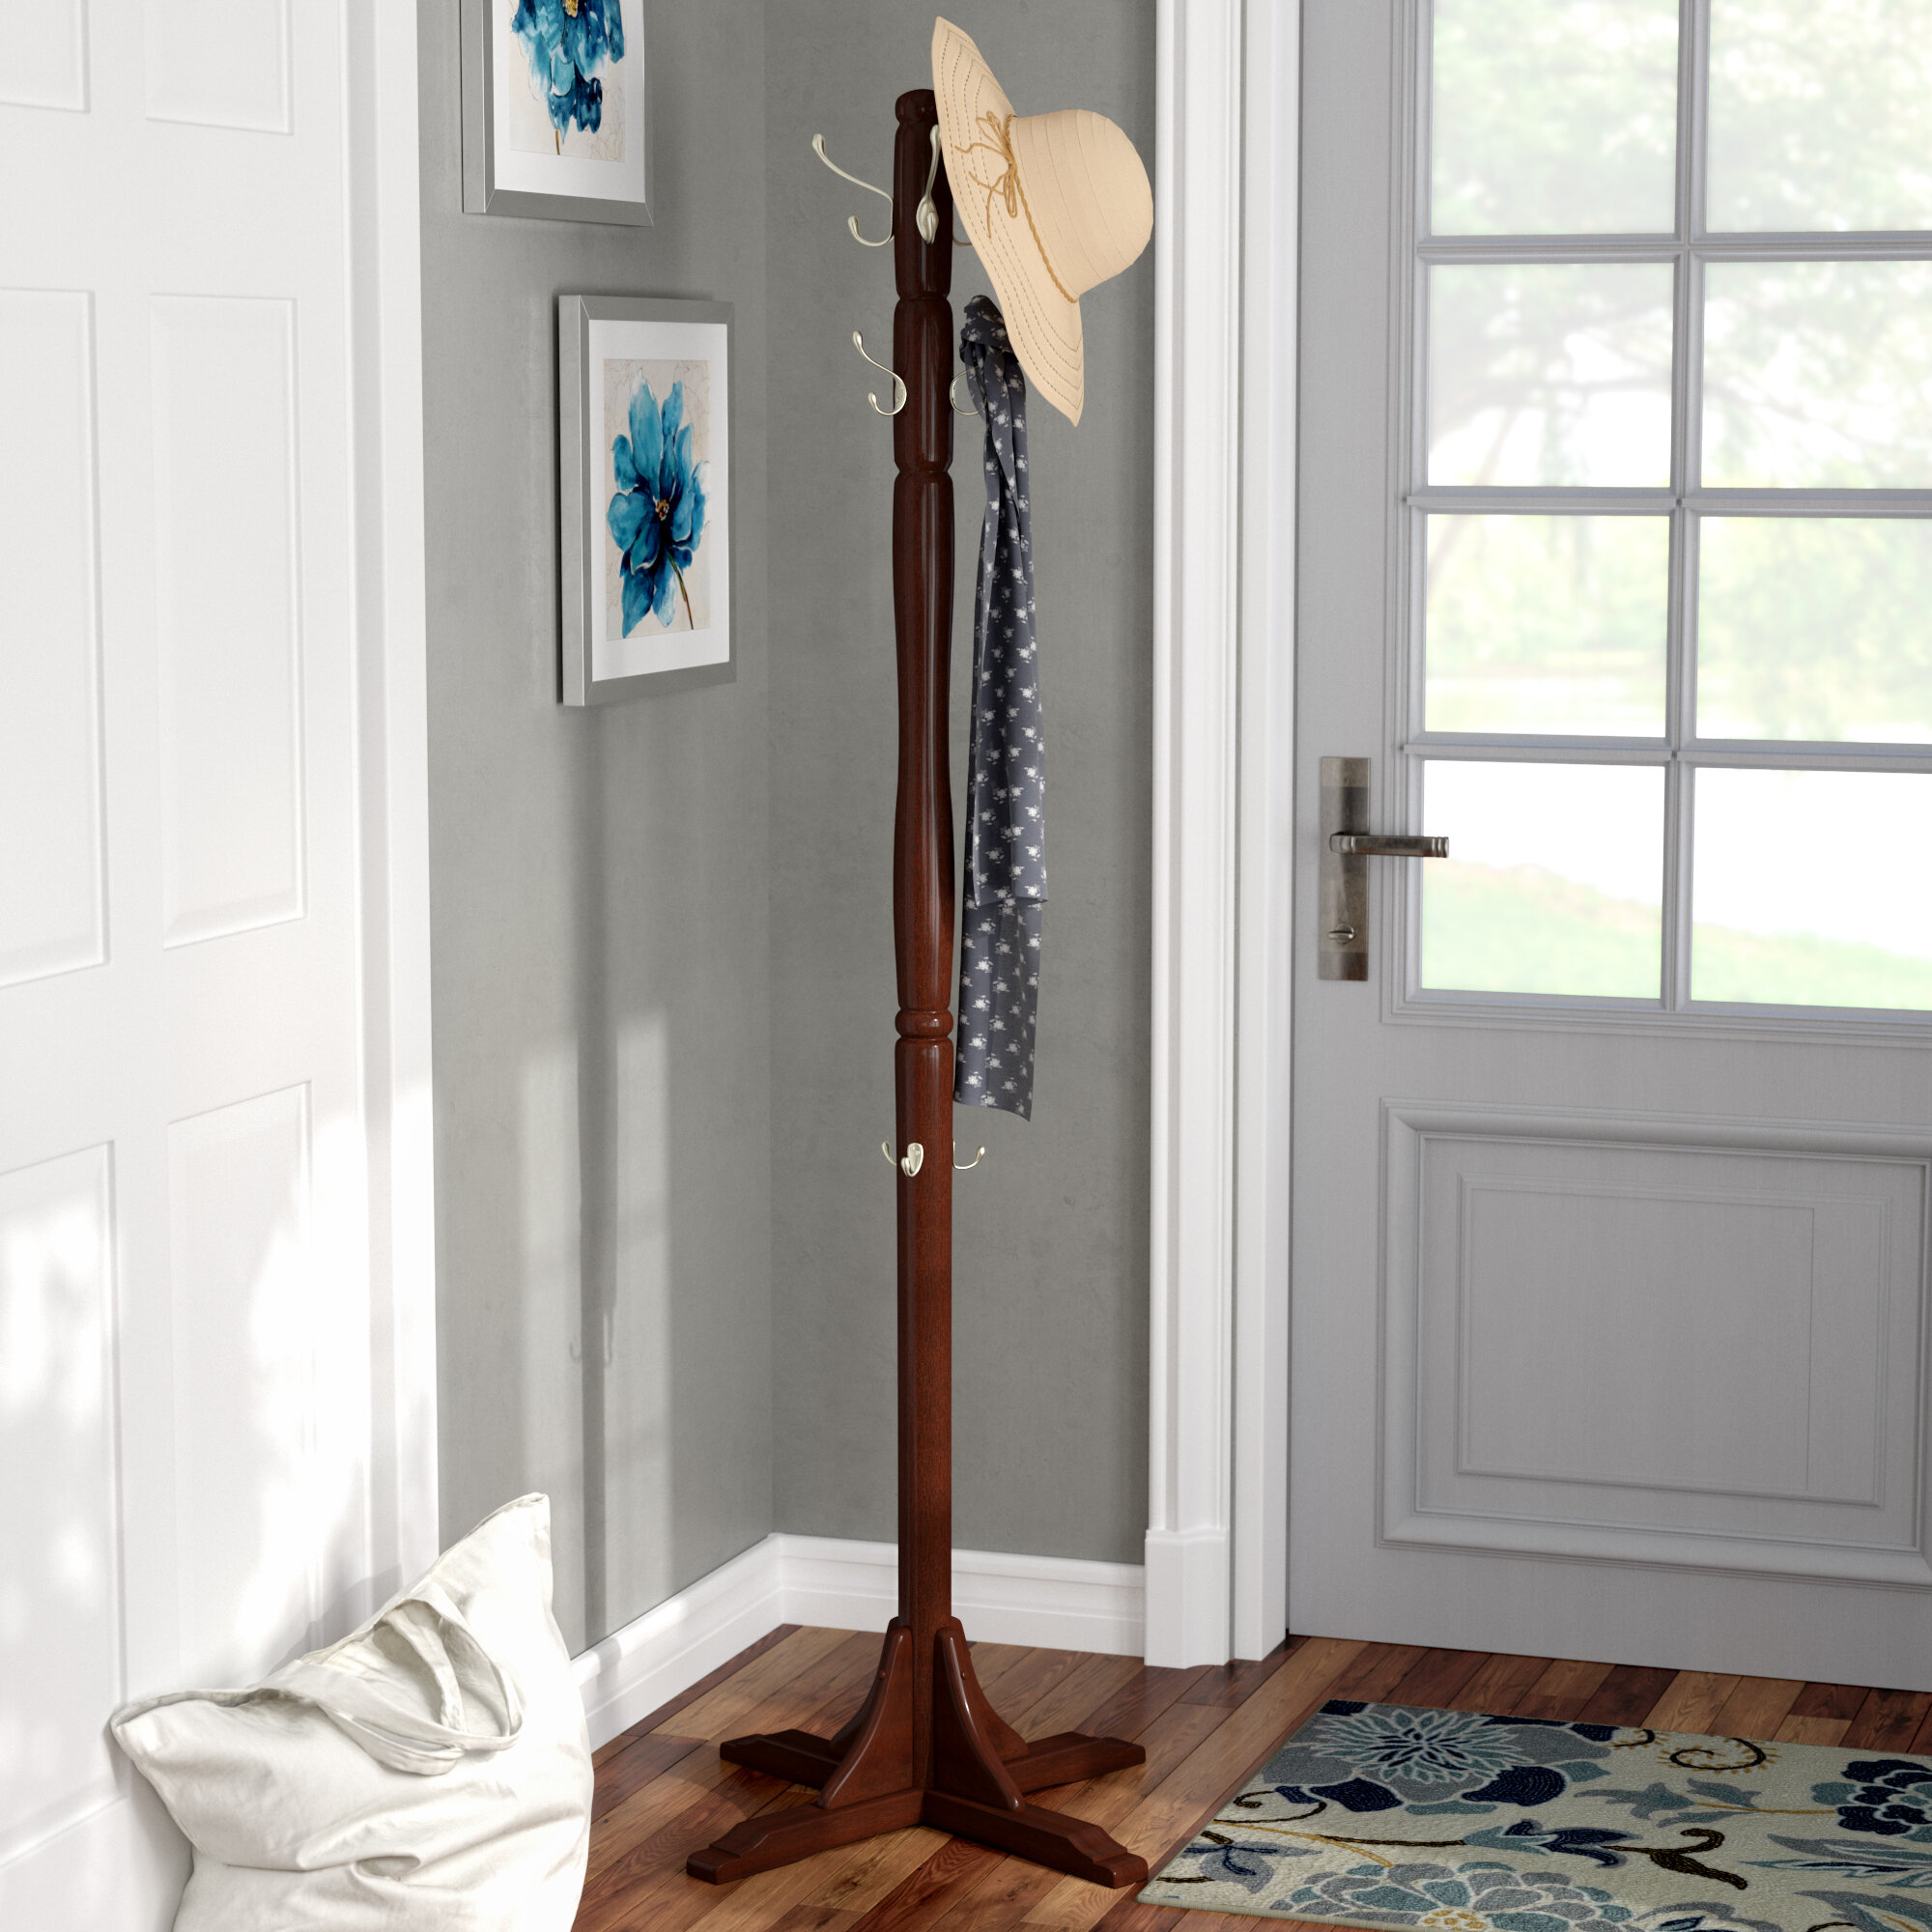 d55c691cbe5ce Alcott Hill Freestanding Wood Coat Stand   Reviews